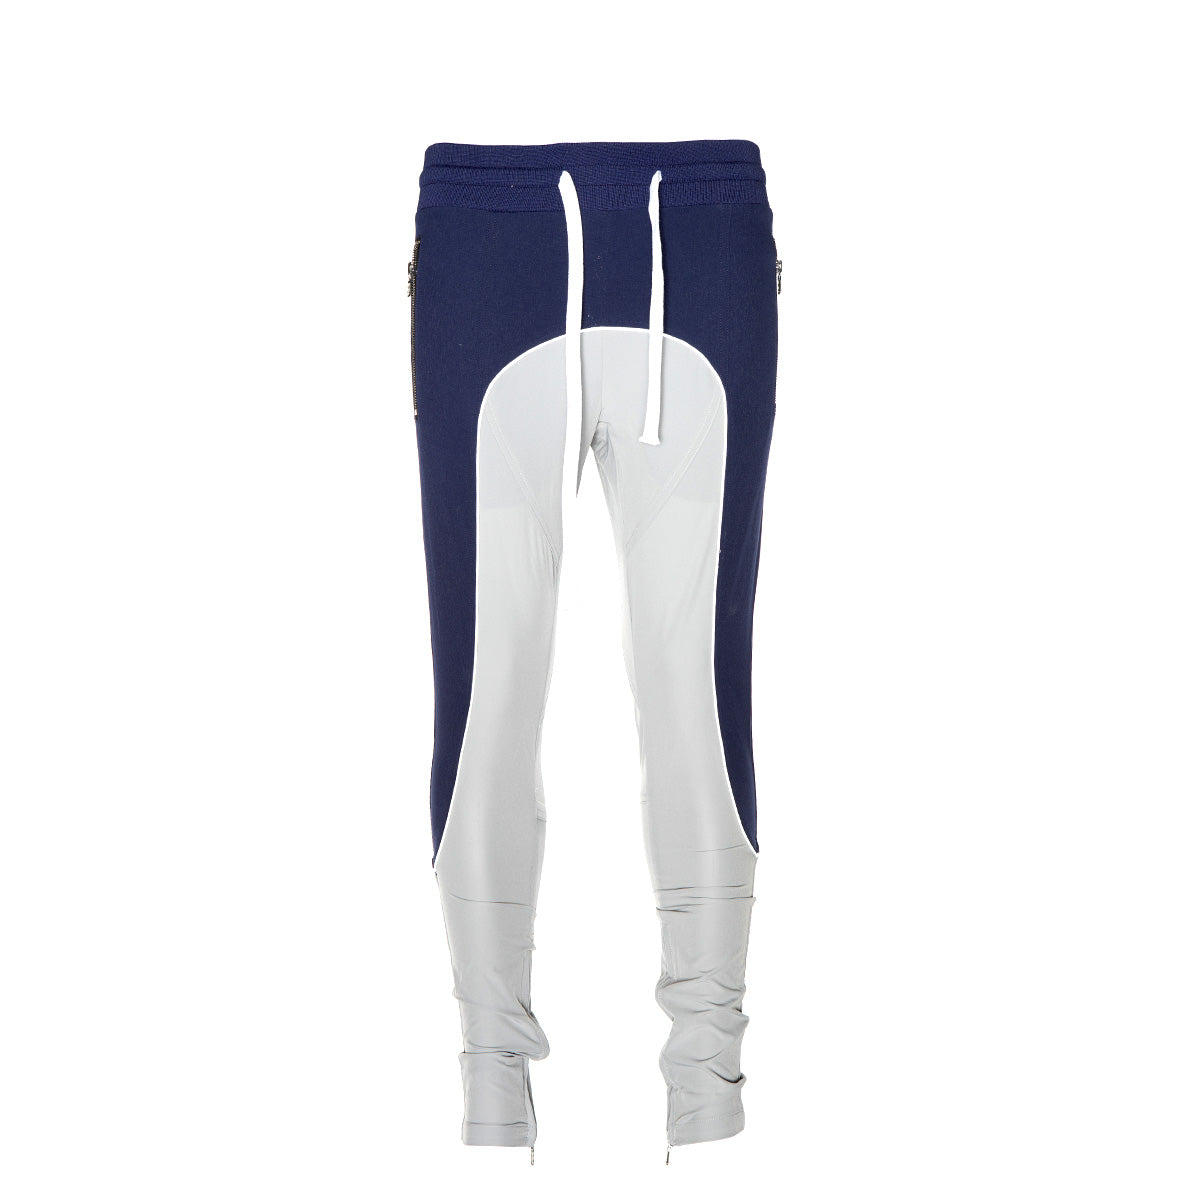 Lifted Anchors Turini Men's Track Pants